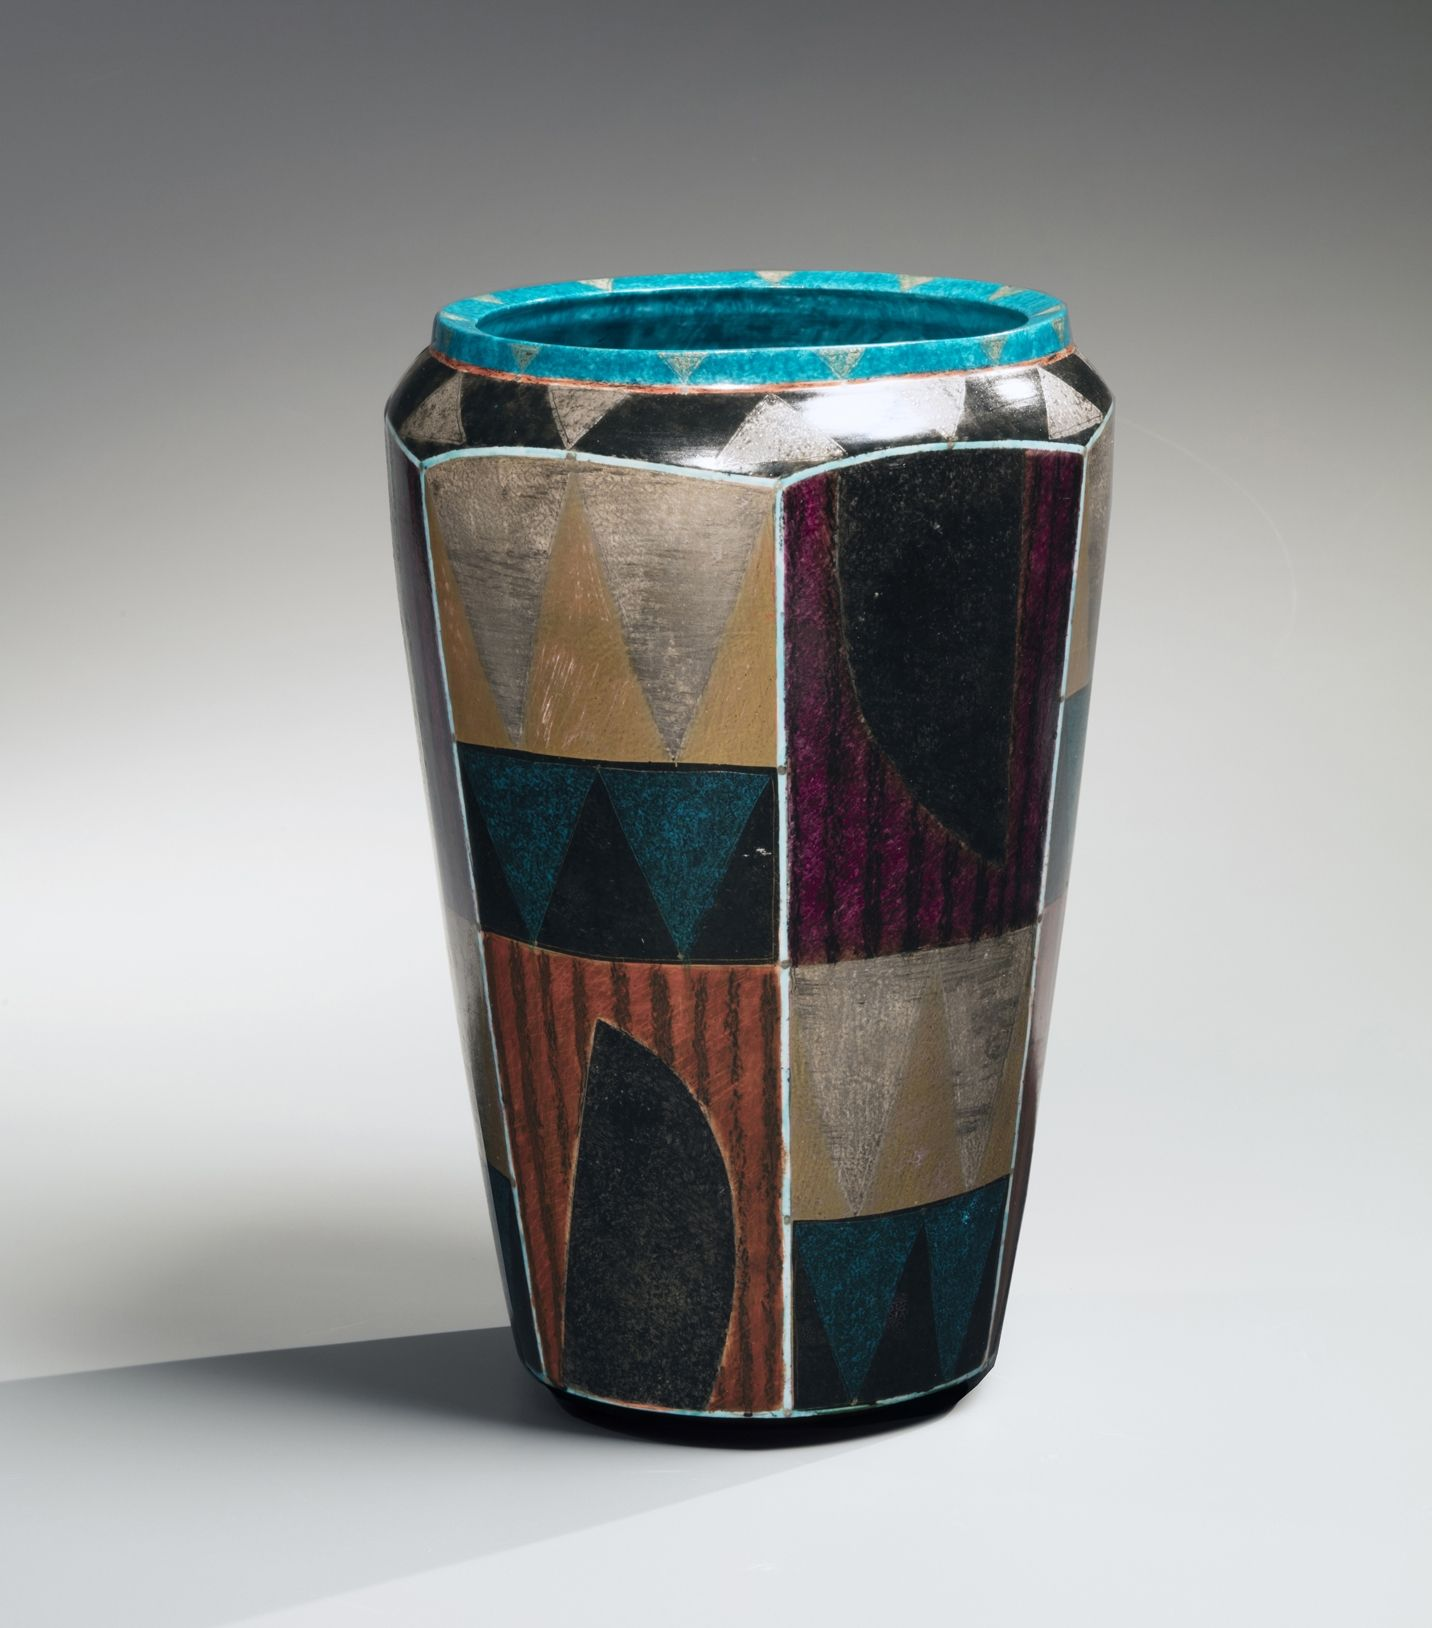 Vessel with geometric patterning, 2006